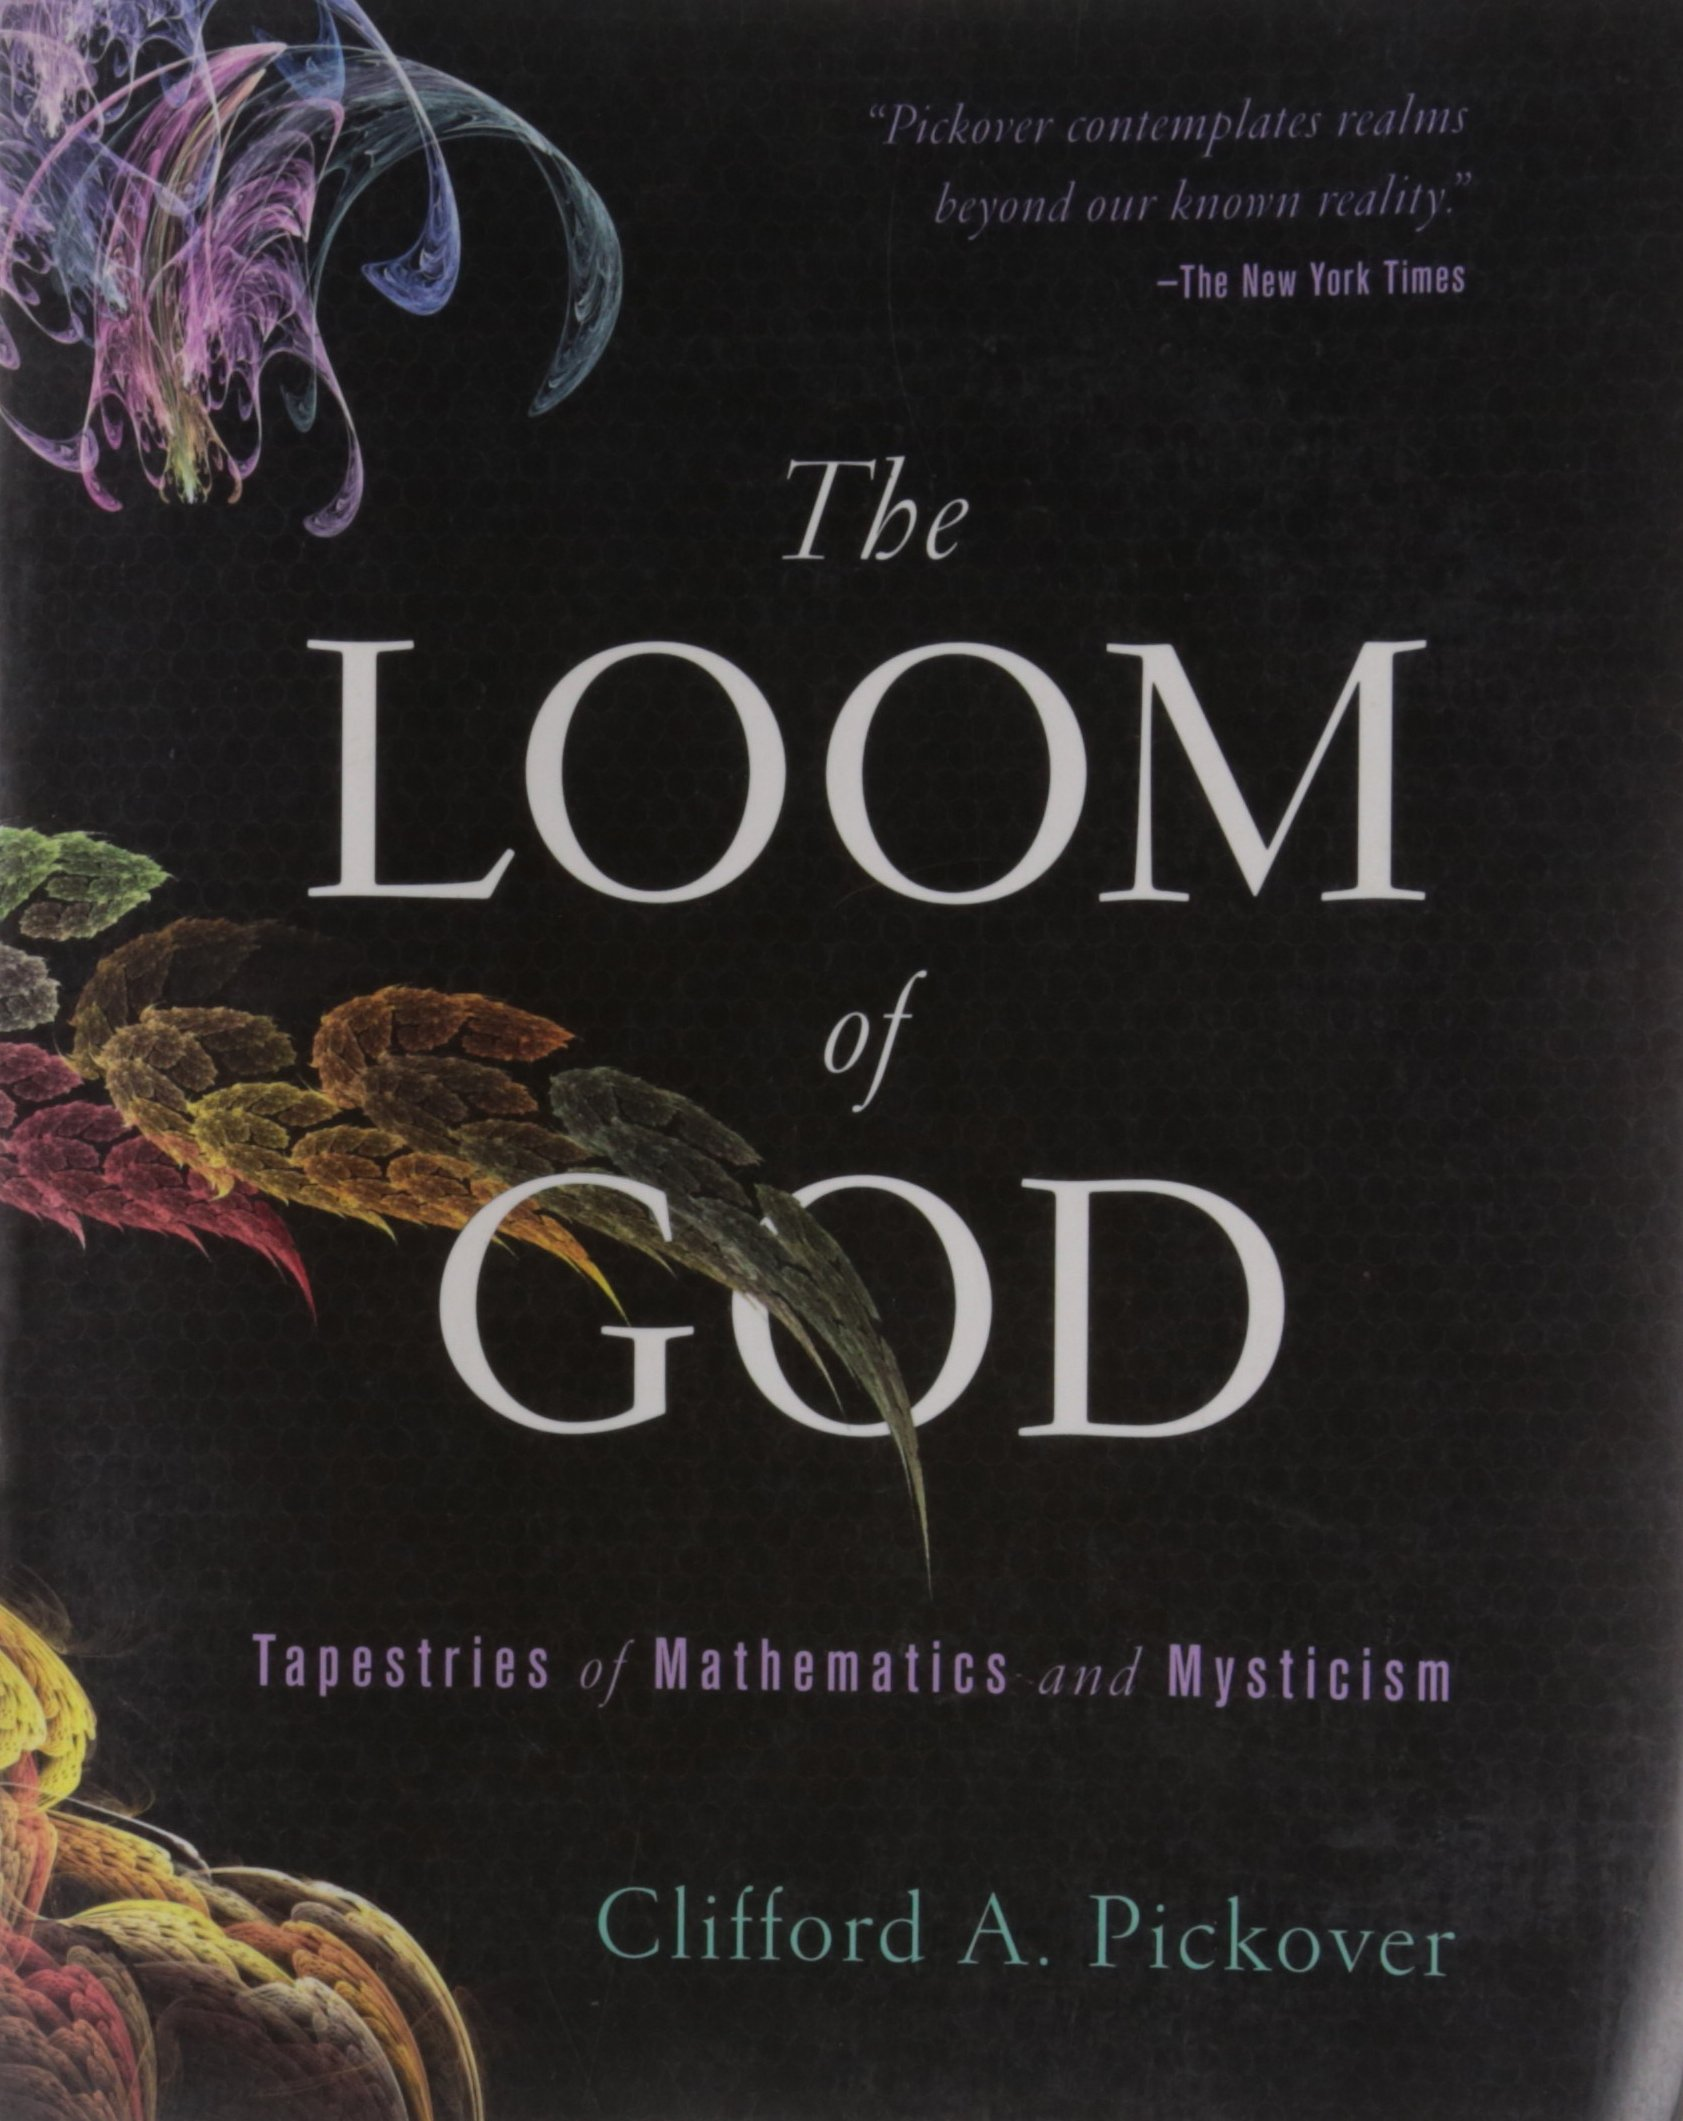 The Loom of God: Tapestries of Mathematics and Mysticism: Pickover,  Clifford A.: 9781402764004: Amazon.com: Books